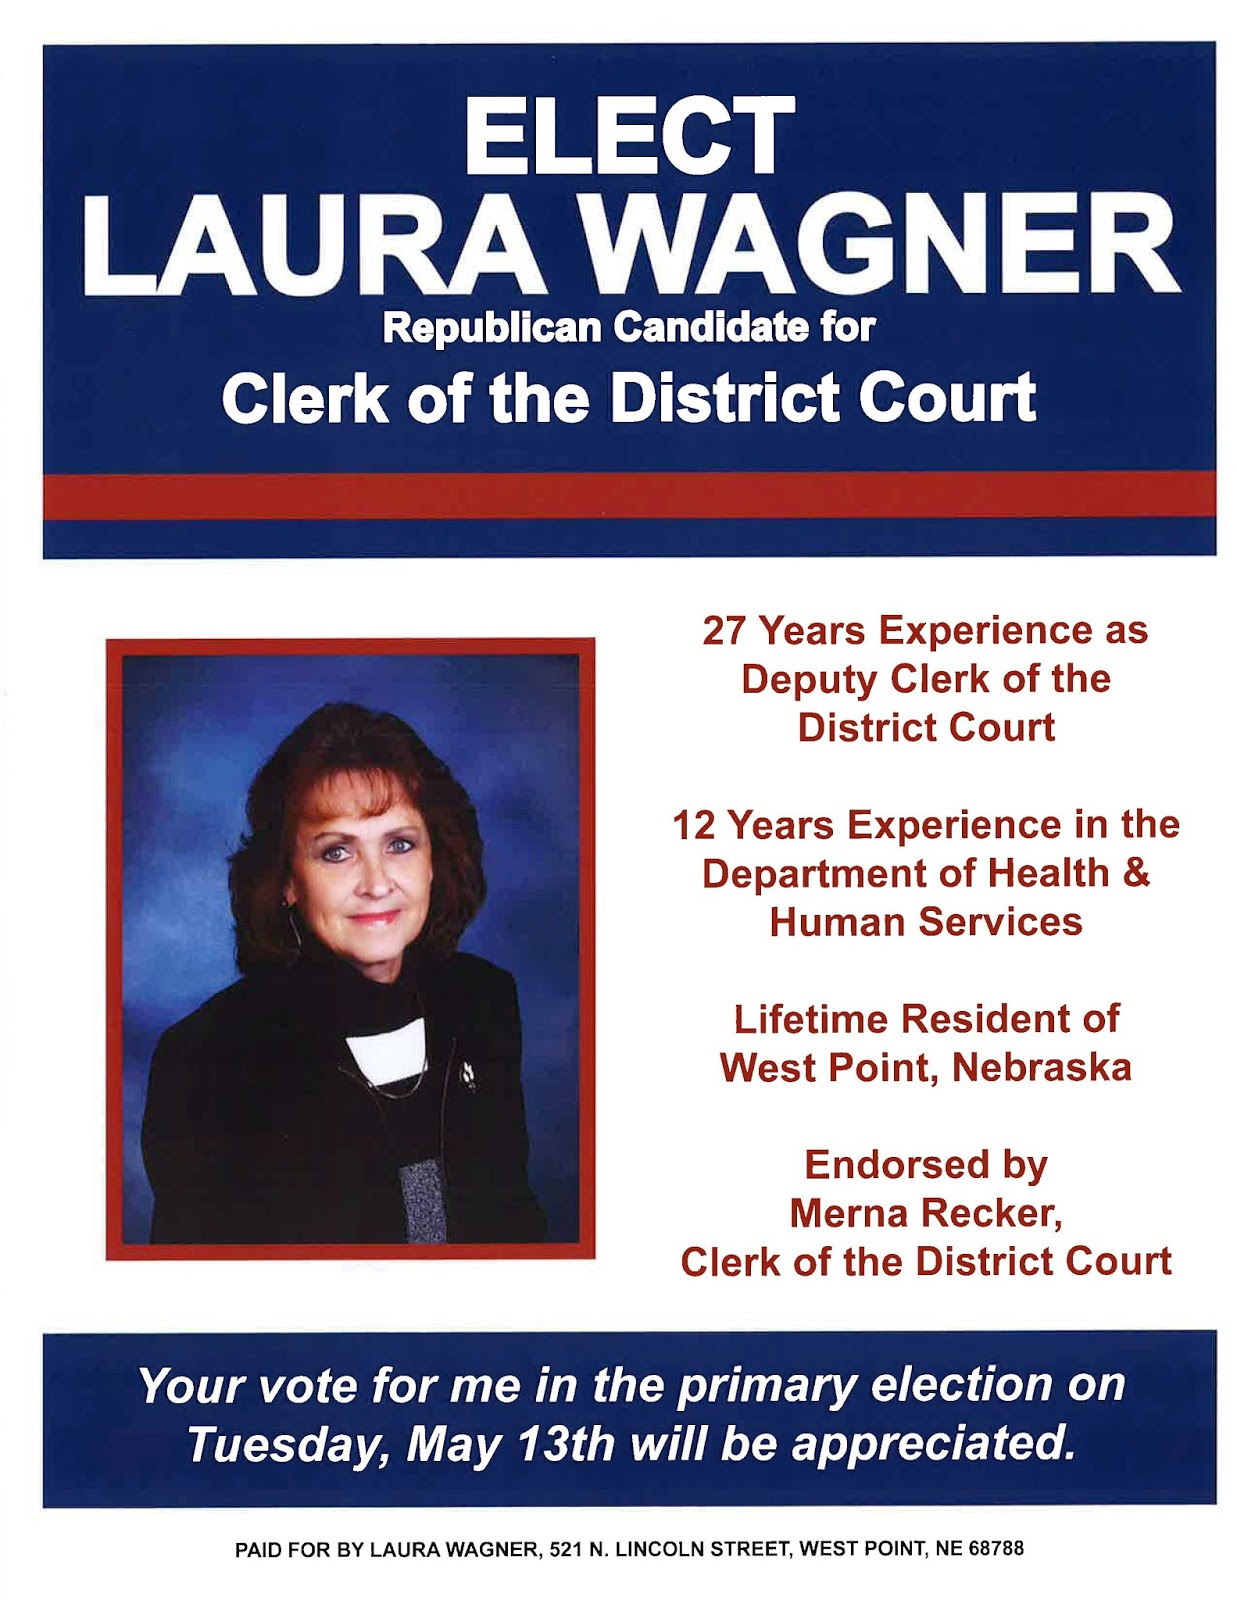 Nebraska cuming county - Laura Has Earned The Opportunity To Serve Cuming County As Our Clerk Of The District Court